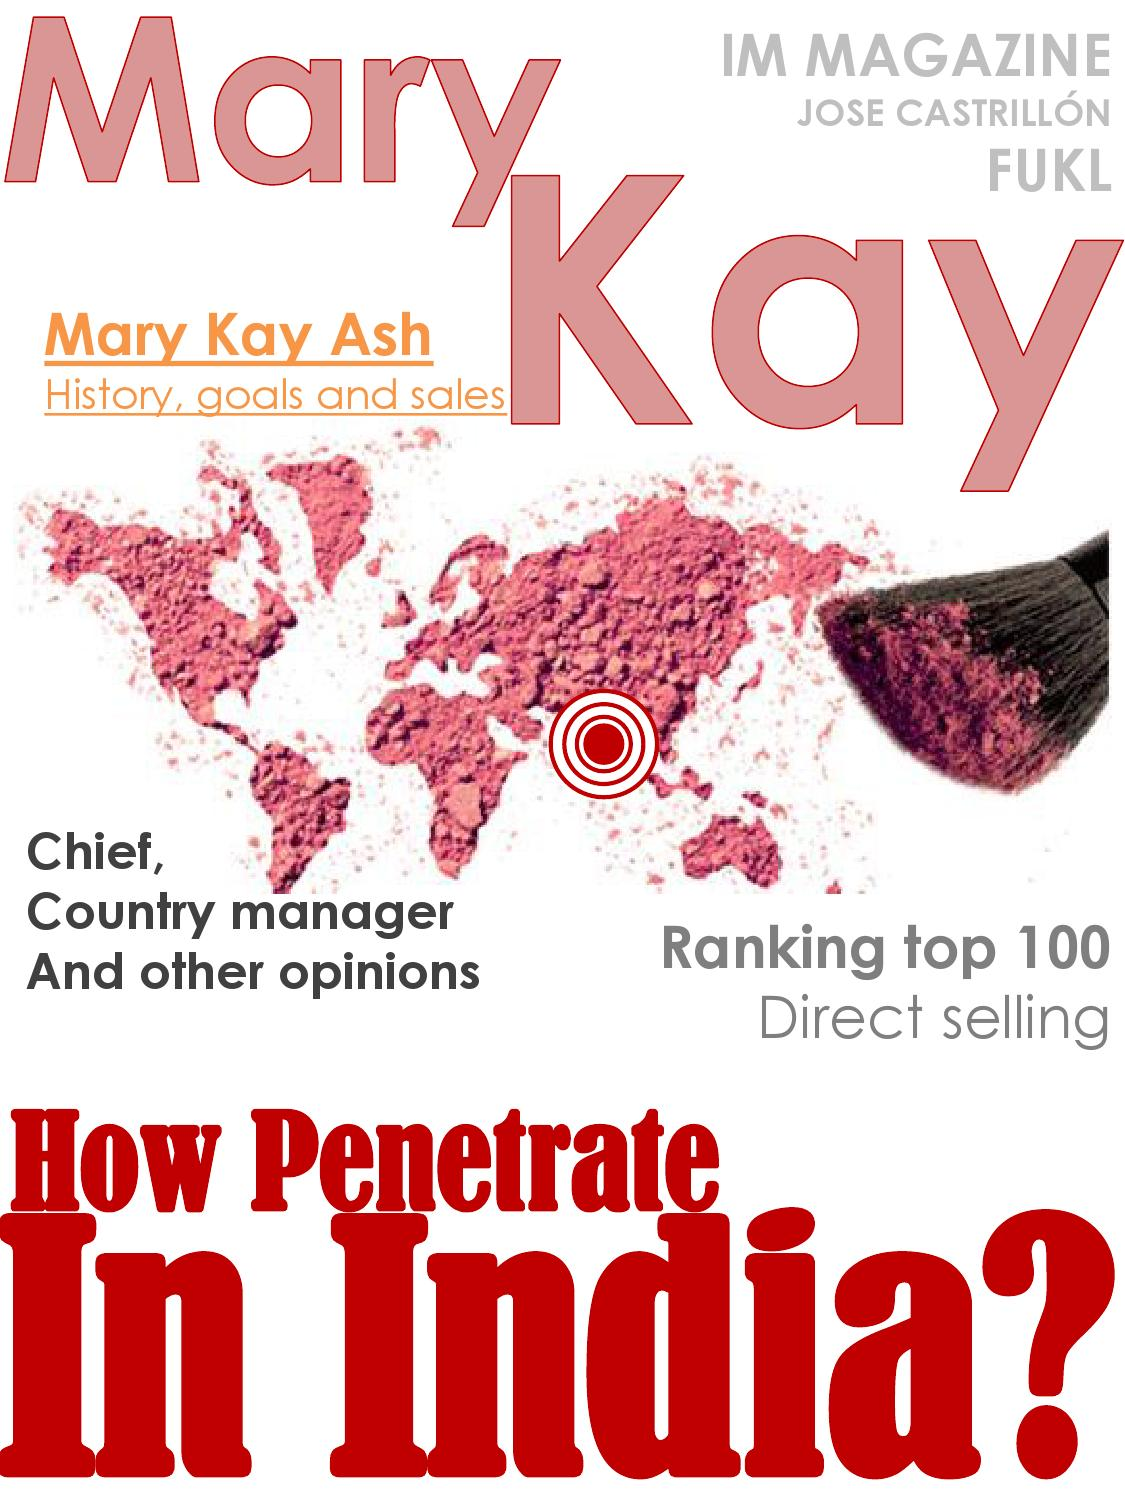 Mary kay india by jcastrillonmarin issuu for Town and country magazine sweepstakes